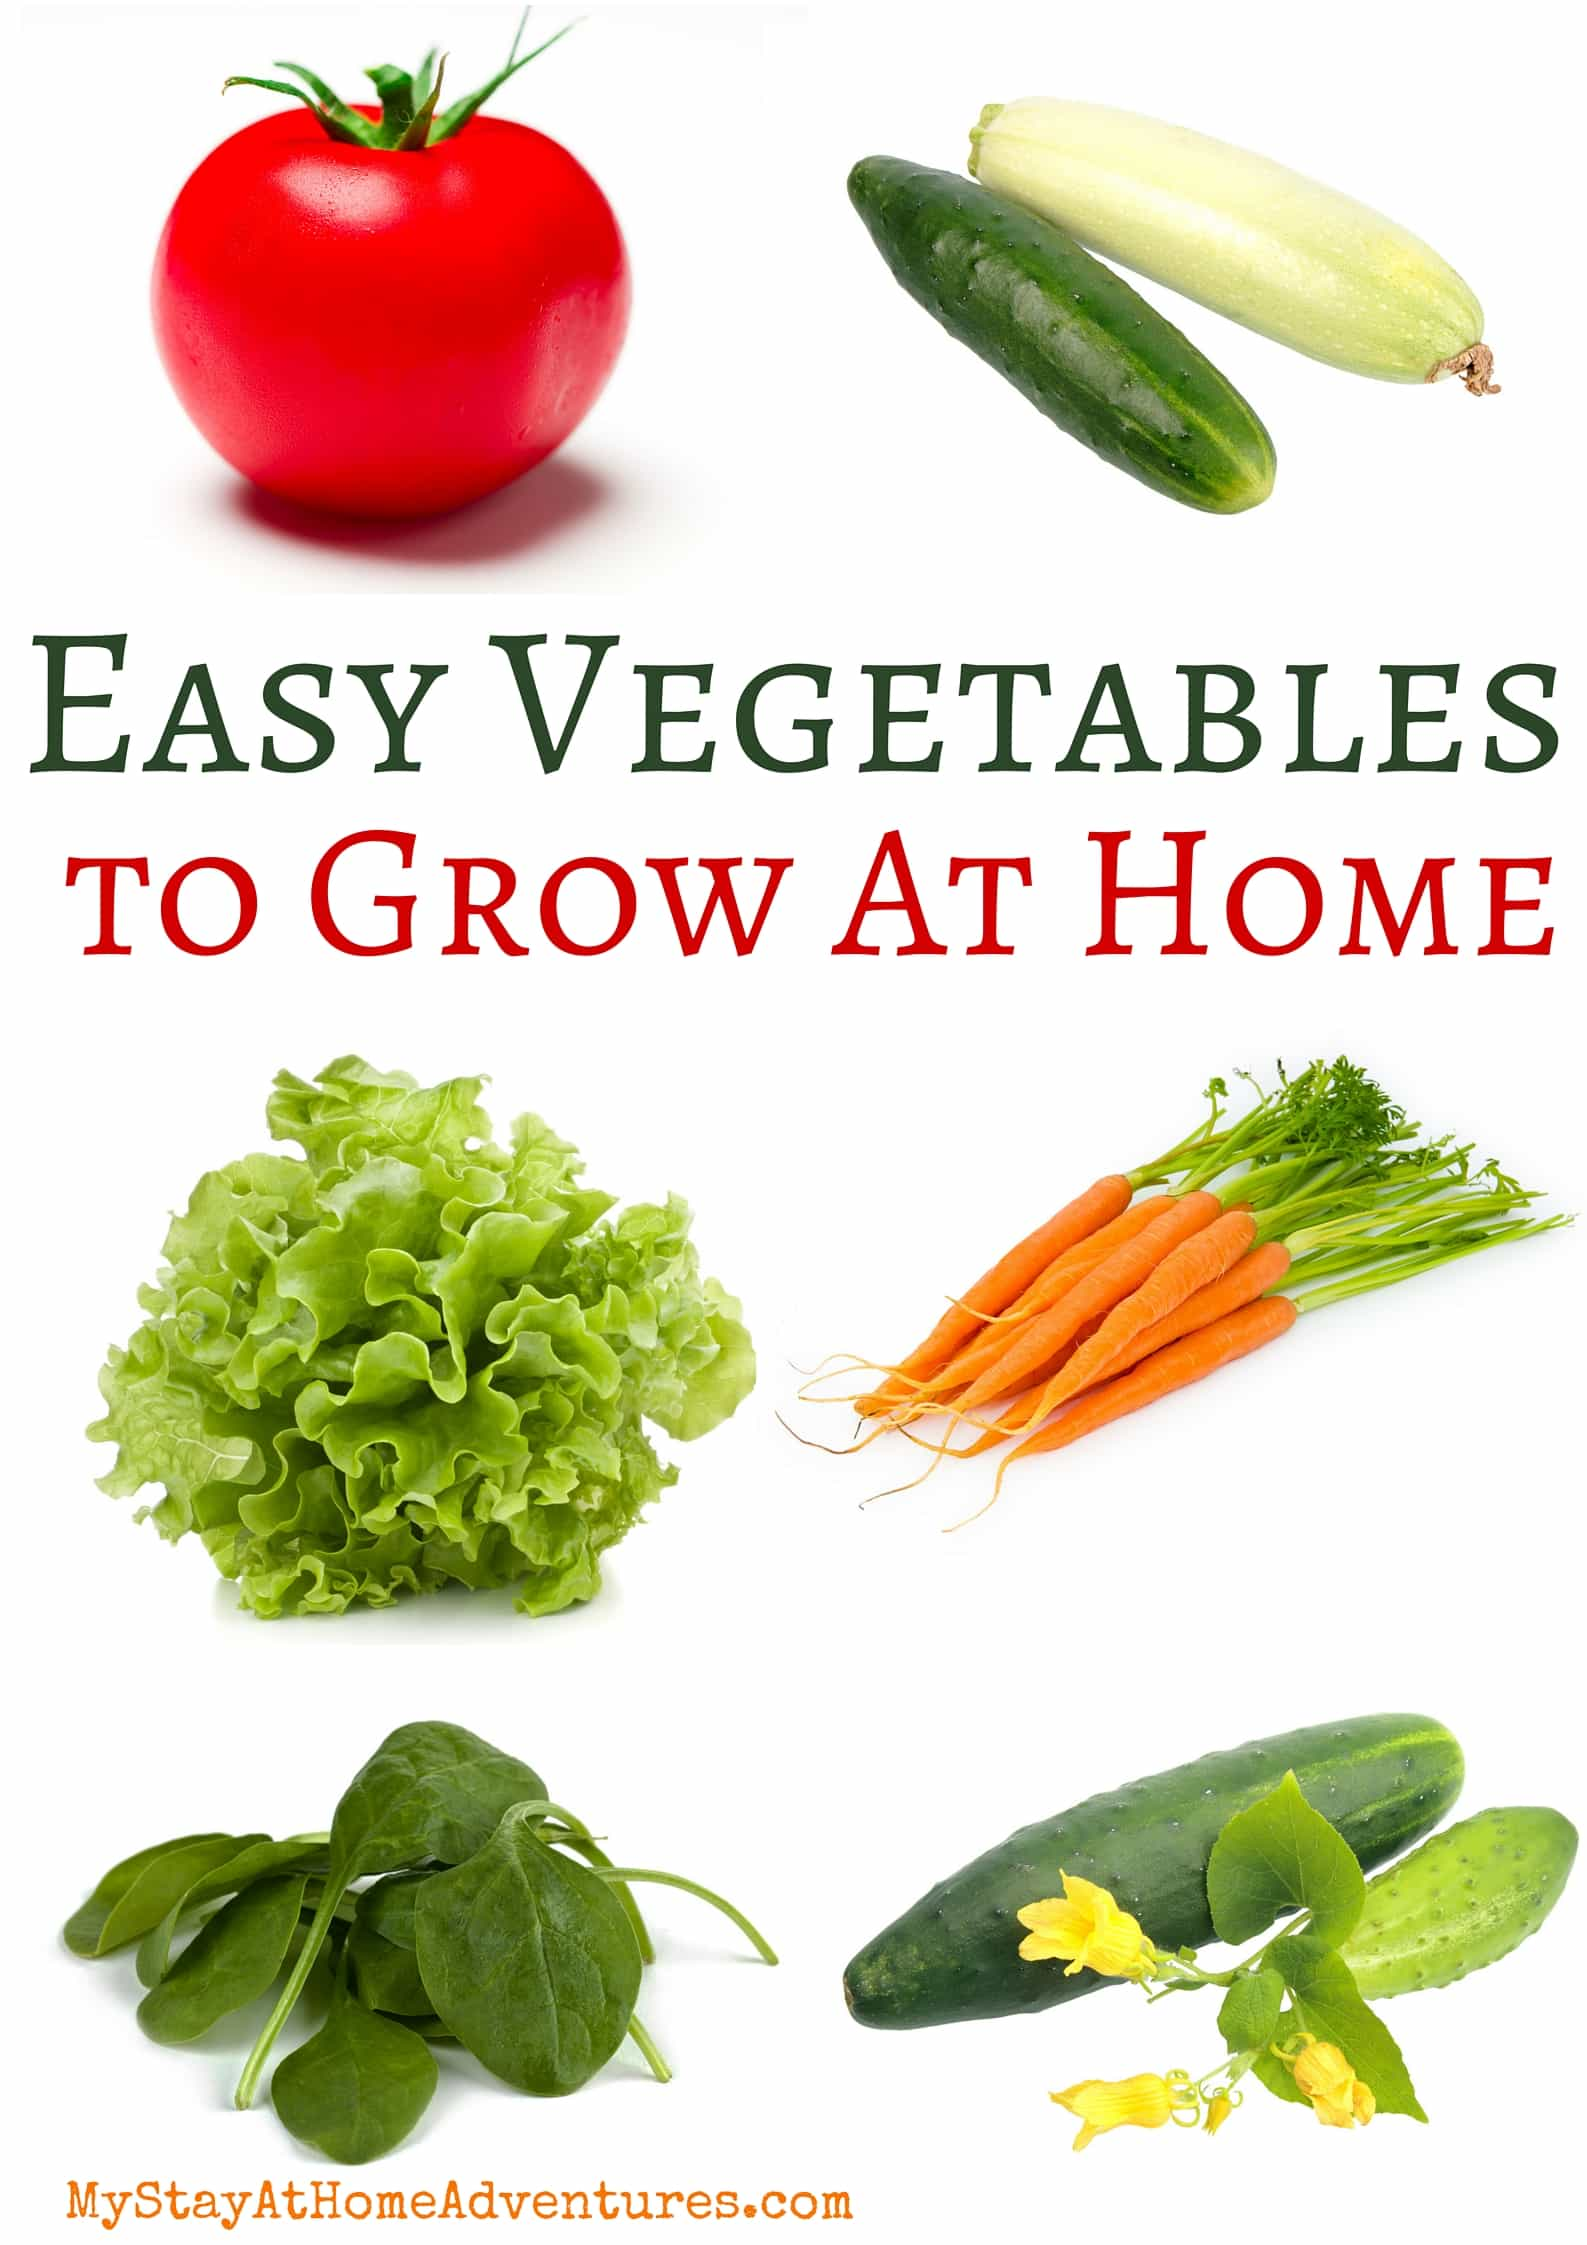 Starting a garden this year and don't know what to grow? Learn what are the top 7 easy vegetables to grow to get your garden on the way. #garden #gardeningtips #beginnergardener via @mystayathome